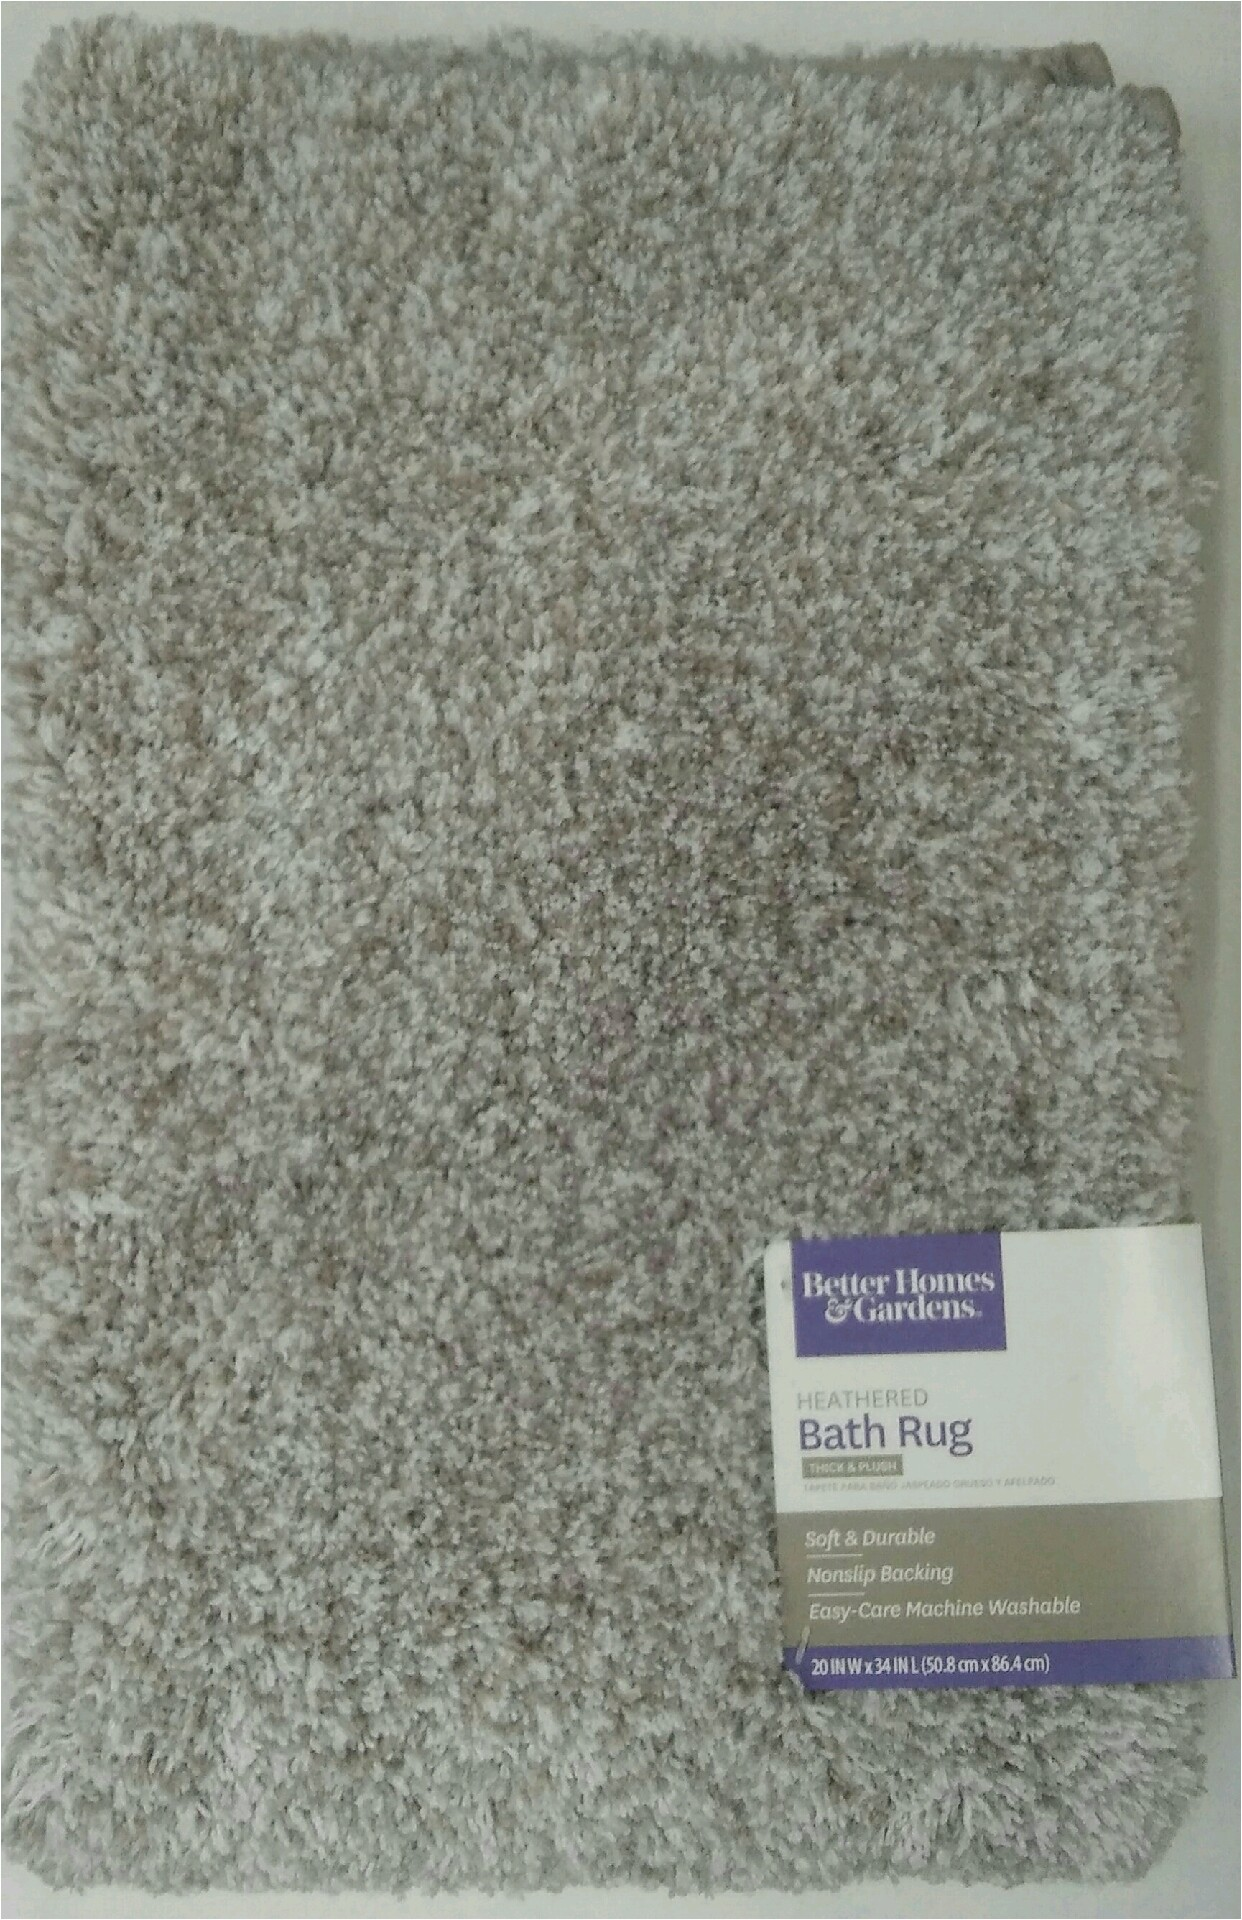 Thick Plush Bath Rugs Better Homes and Gardens Thick and Plush Bath Rug 20 X 34 Taupe Splash Heather